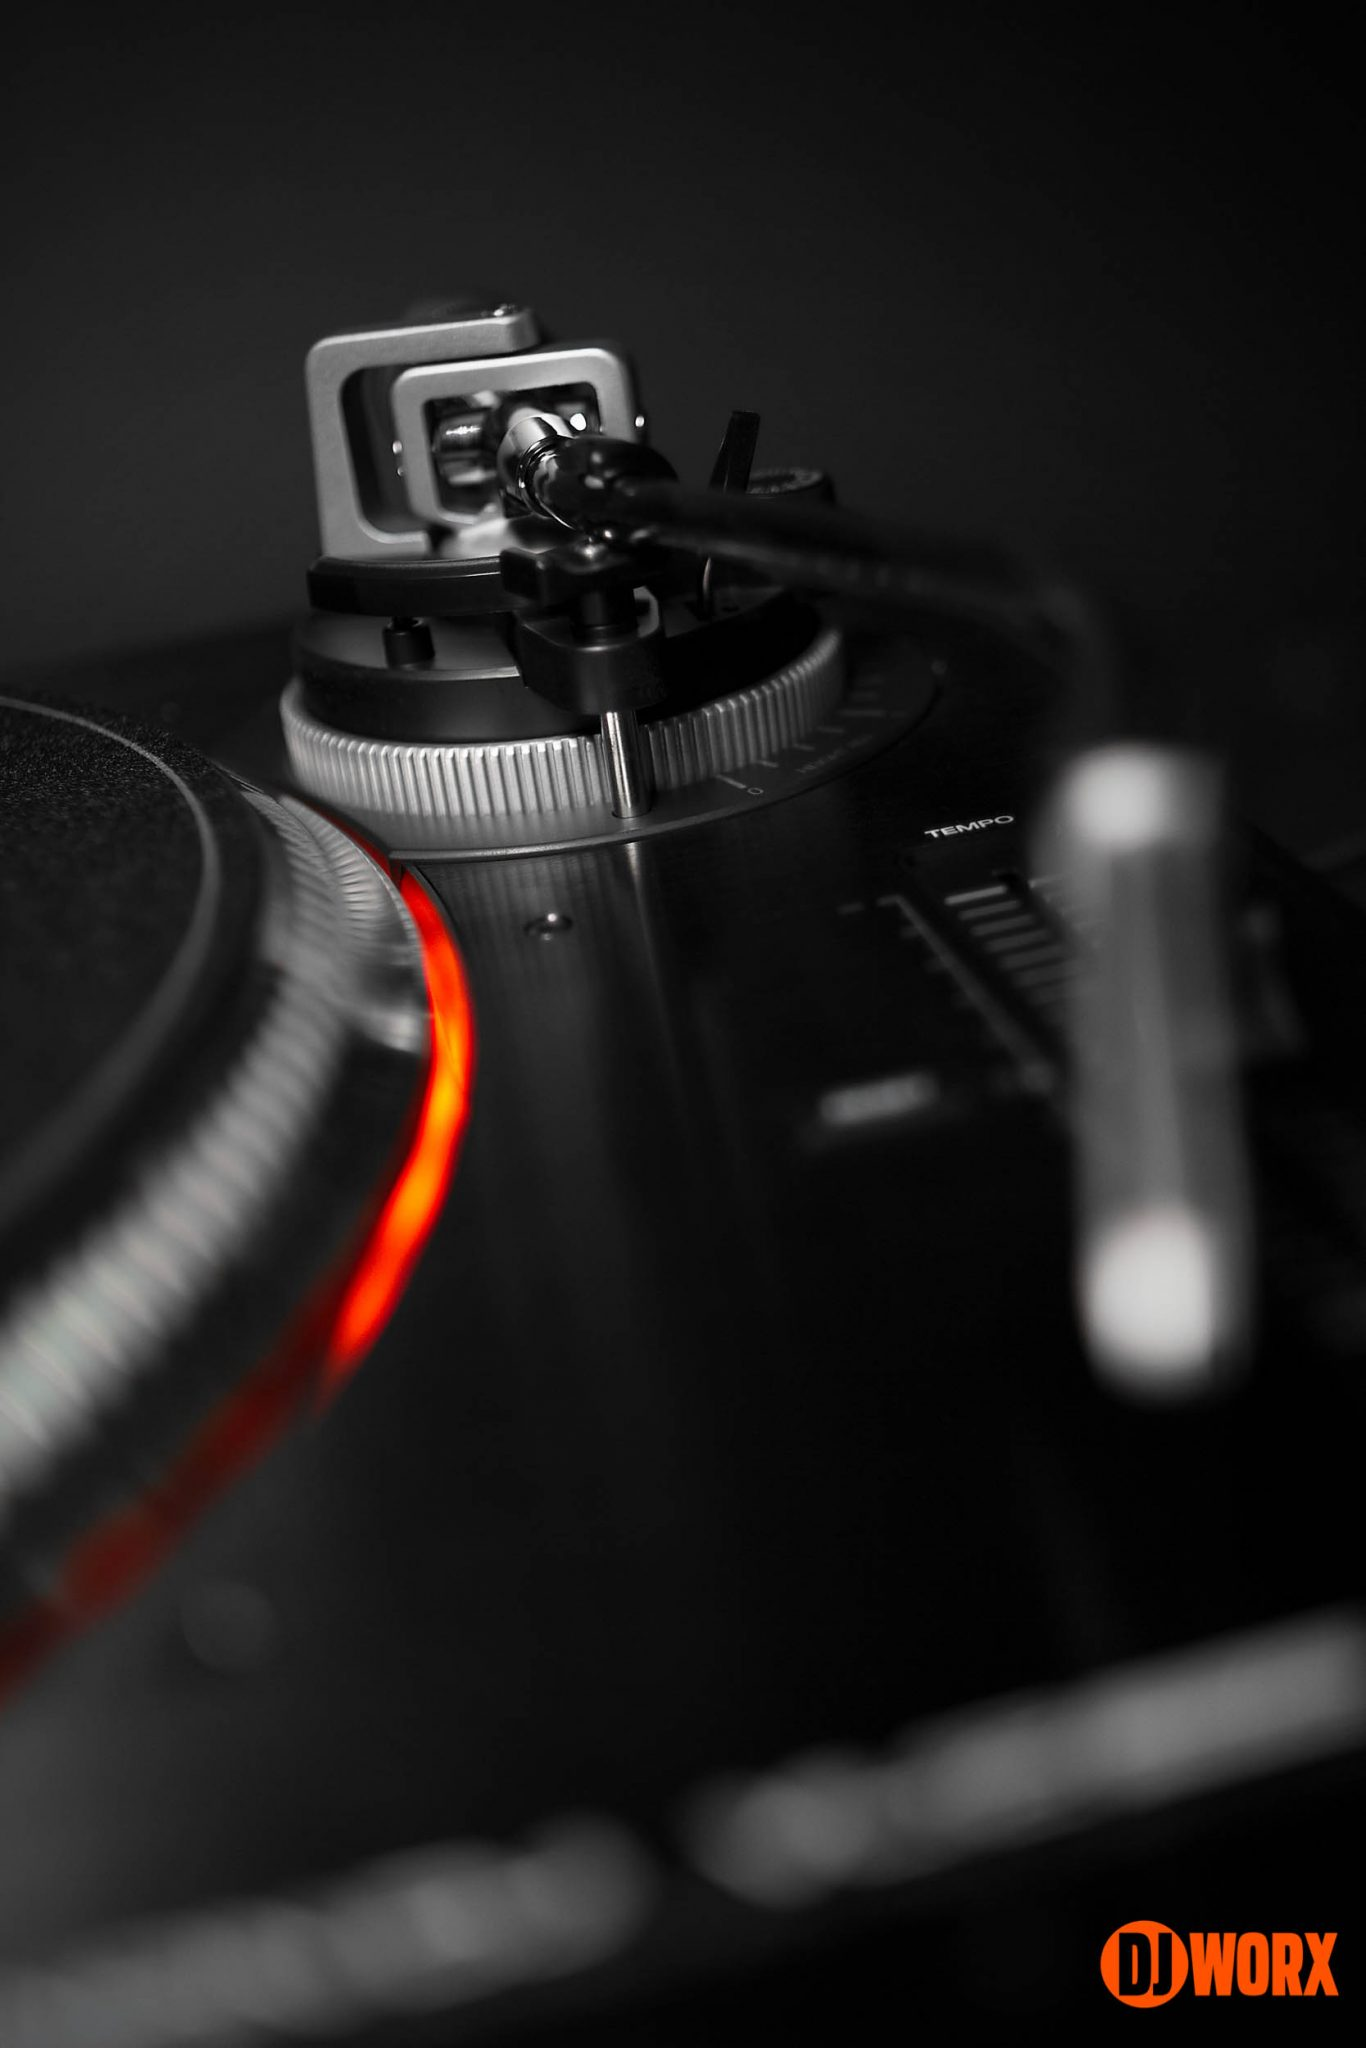 Denon DJ L12 Prime turntable review DJWORX (12)